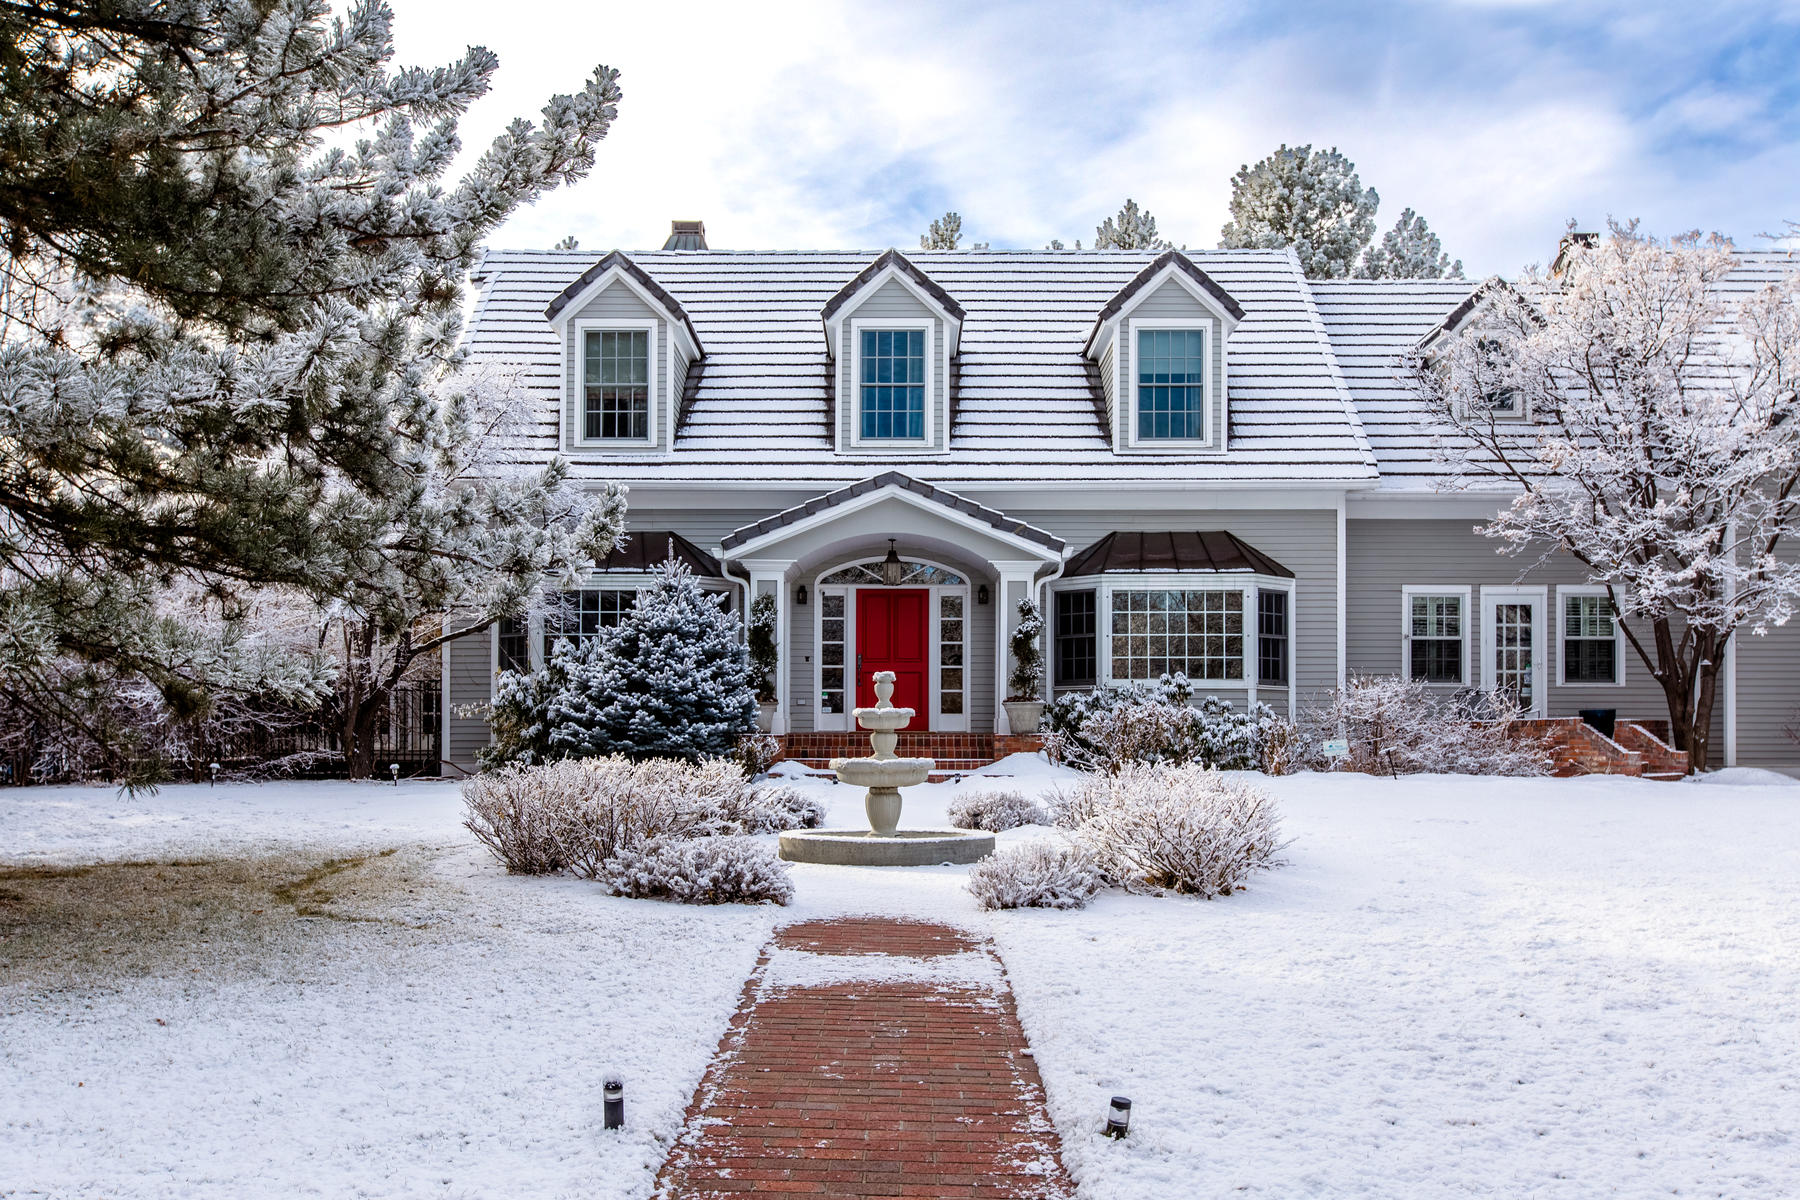 Single Family Homes for Active at Cape Cod home in an exclusive enclave of Old Cherry Hills. 17 Mockingbird Ln. Cherry Hills Village, Colorado 80113 United States